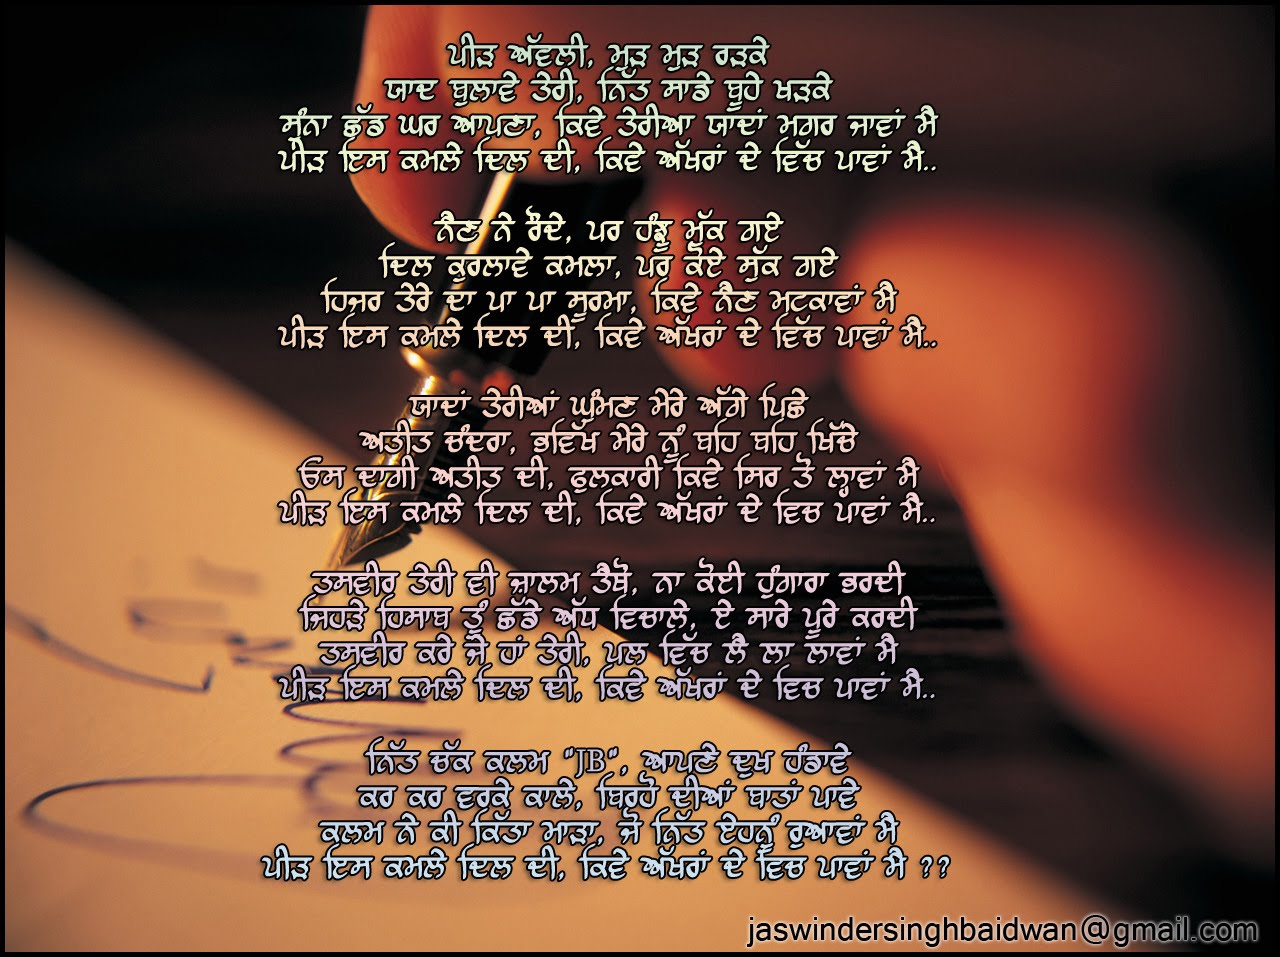 1 Peed is Kamle dil di..... poetry shayari